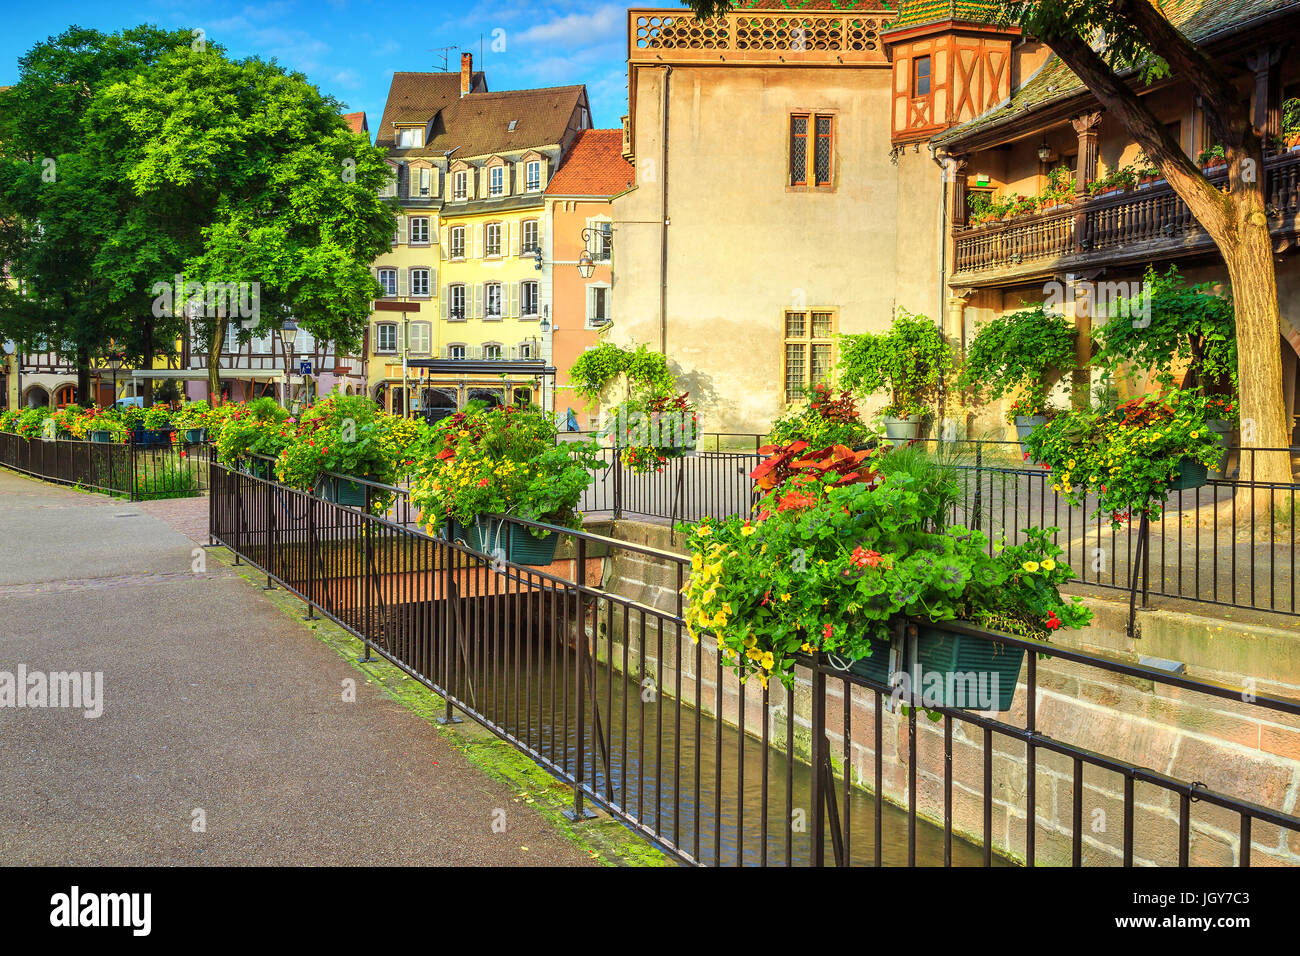 Stunning Colorful Traditional French Houses And Decorated Street With Beautiful Flowers In Best Touristic World Town Colmar France Europe